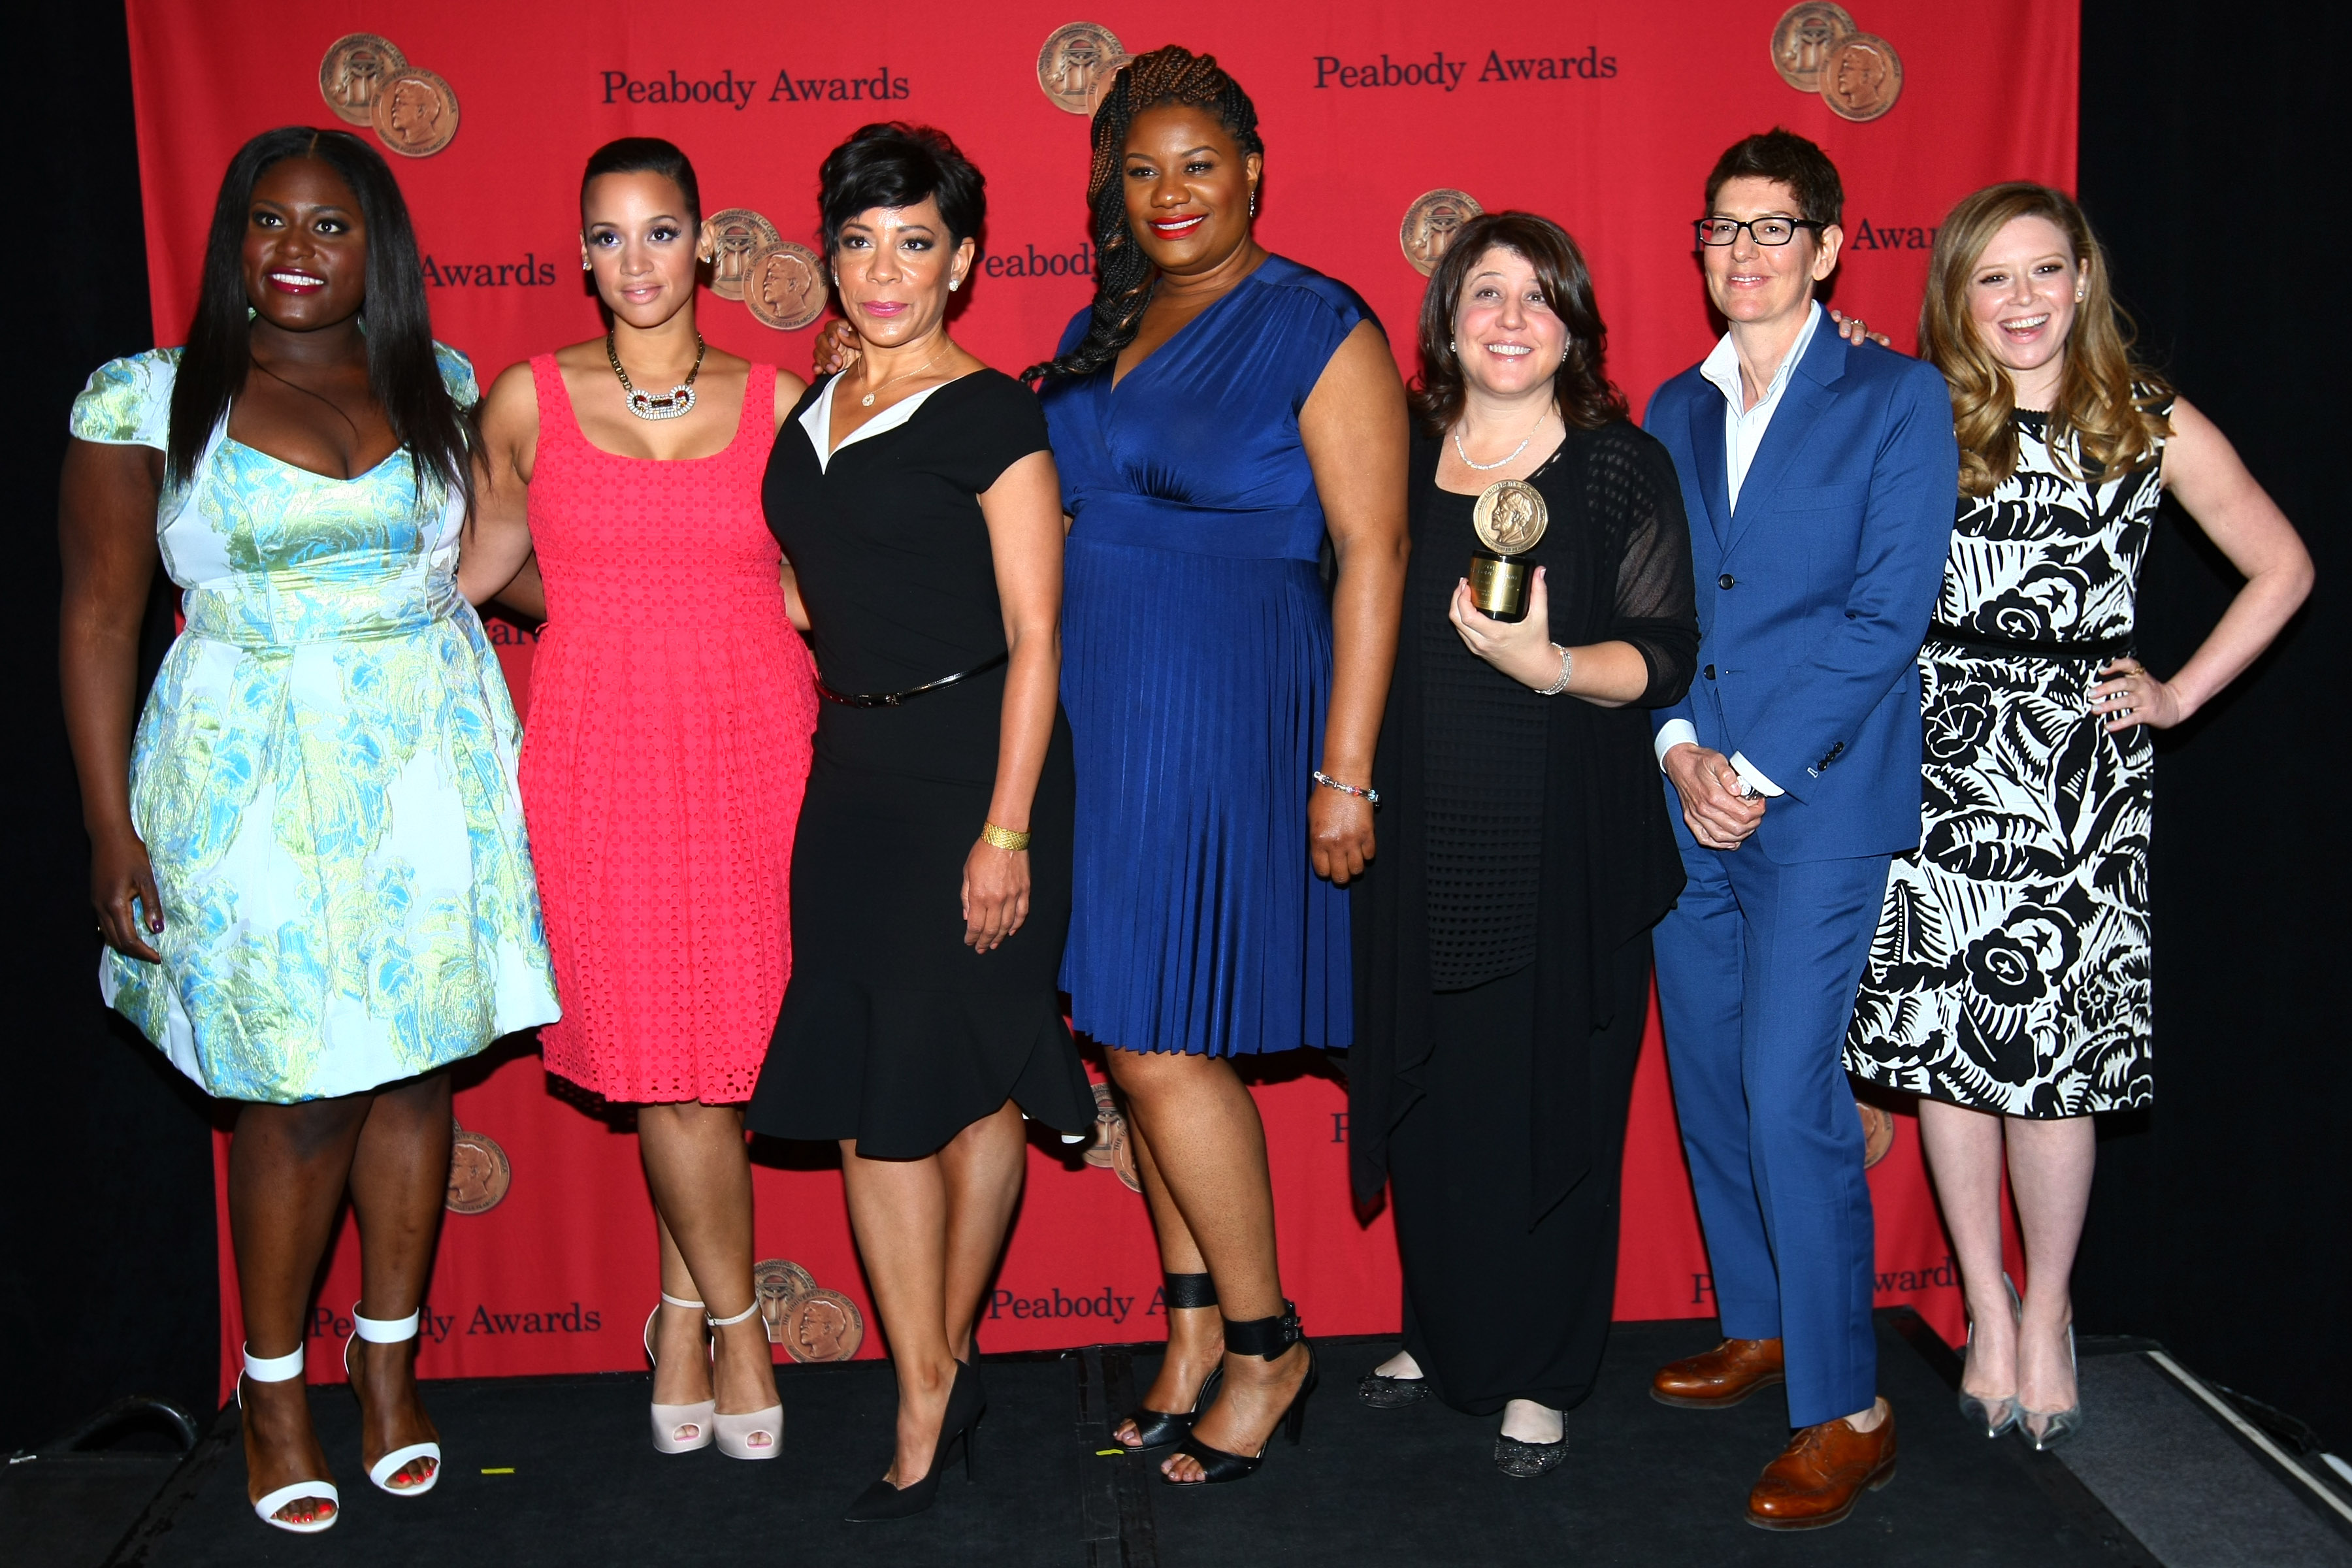 The cast and crew of Orange is the New Black 2014